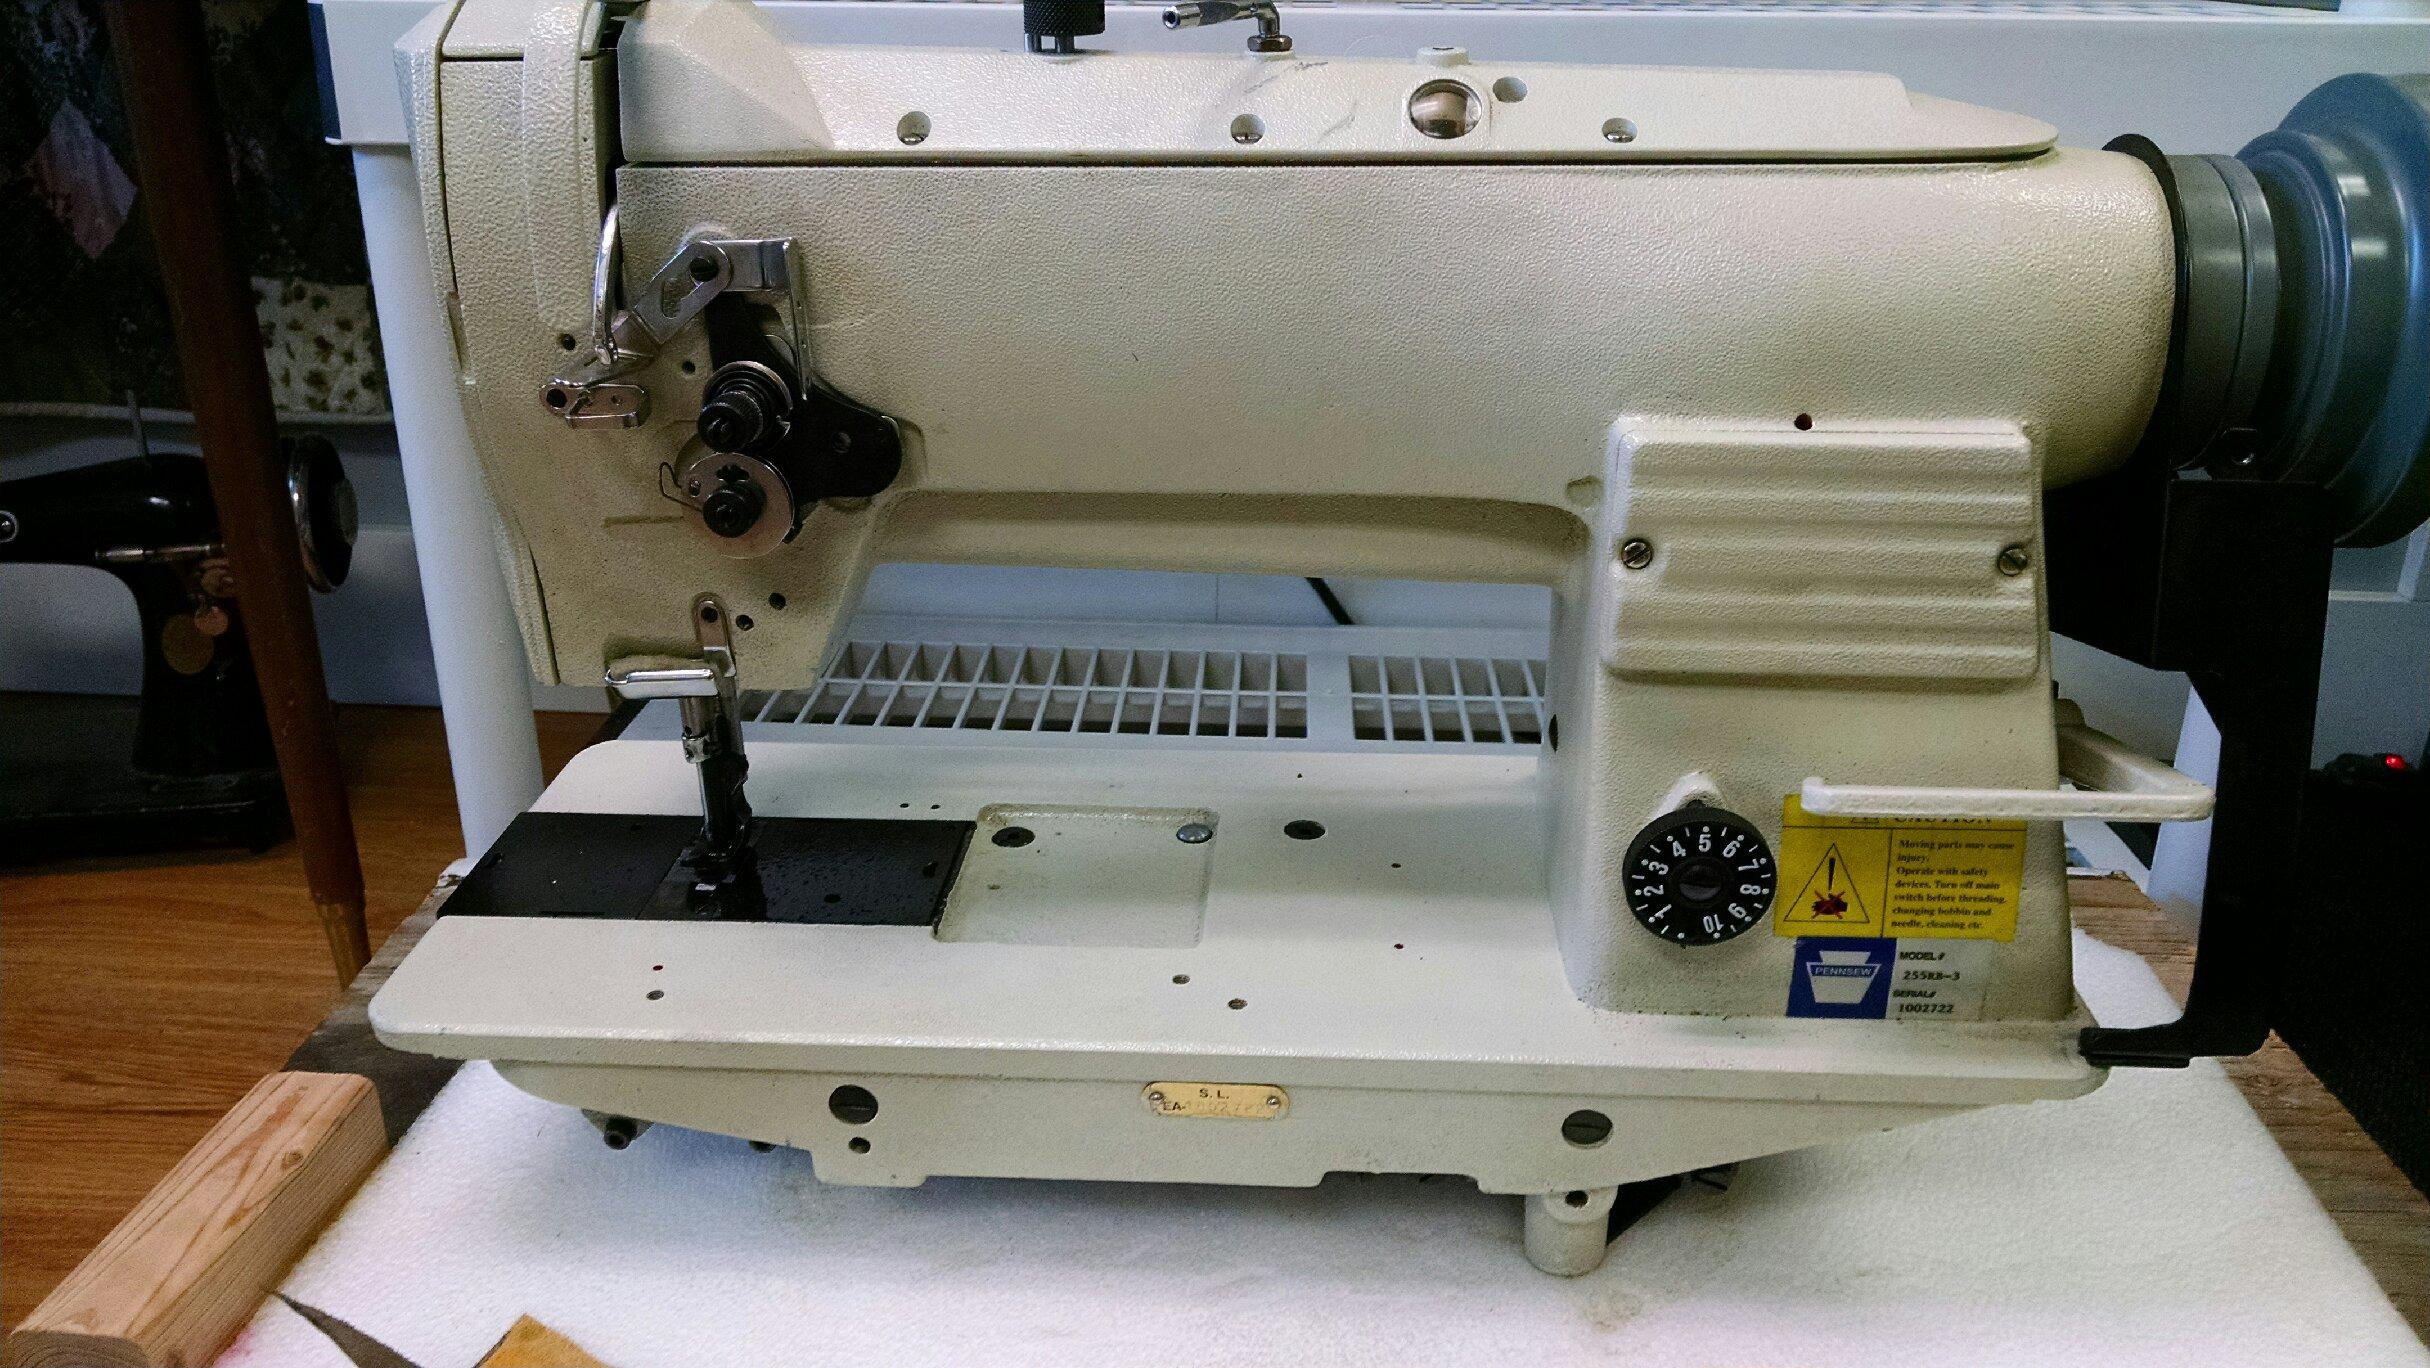 Sewing machine after quality repair in Wasilla, AK